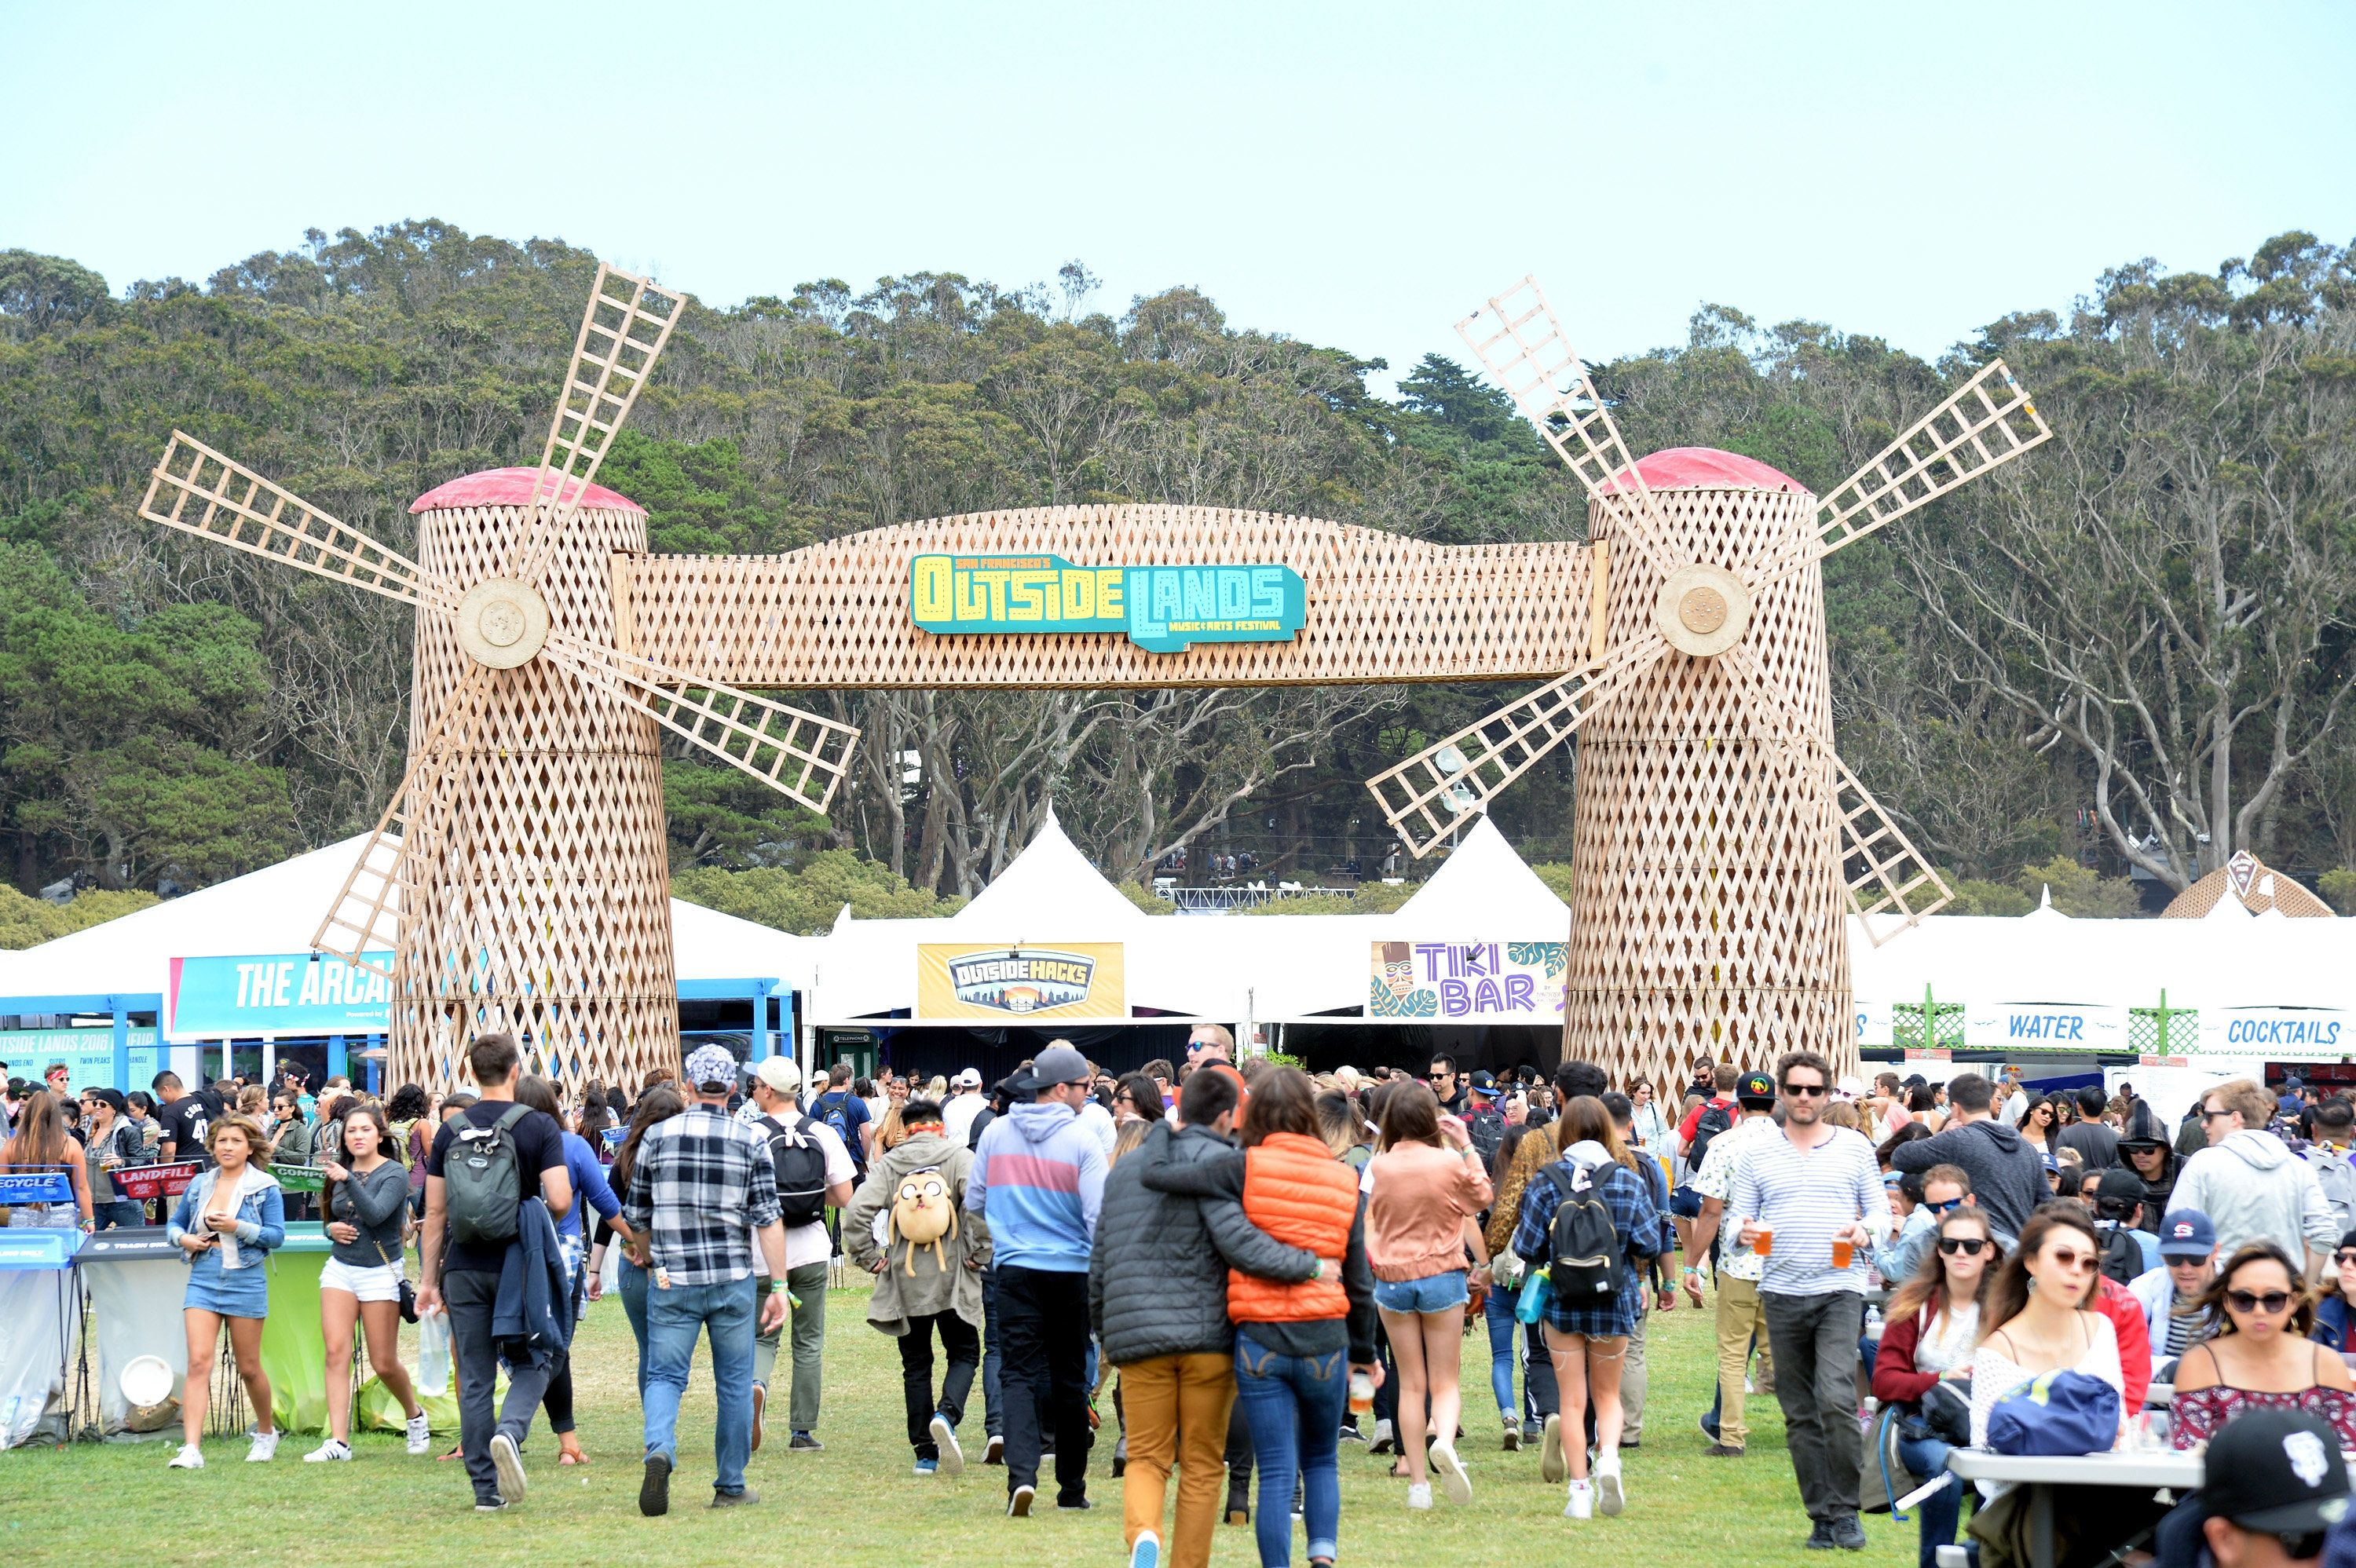 SAN FRANCISCO, CA - AUGUST 07:  Festival goers are seen under the Windmill during the 2016 Outside Lands Music And Arts Festival at Golden Gate Park on August 7, 2016 in San Francisco, California.  (Photo by Jeff Kravitz/FilmMagic)